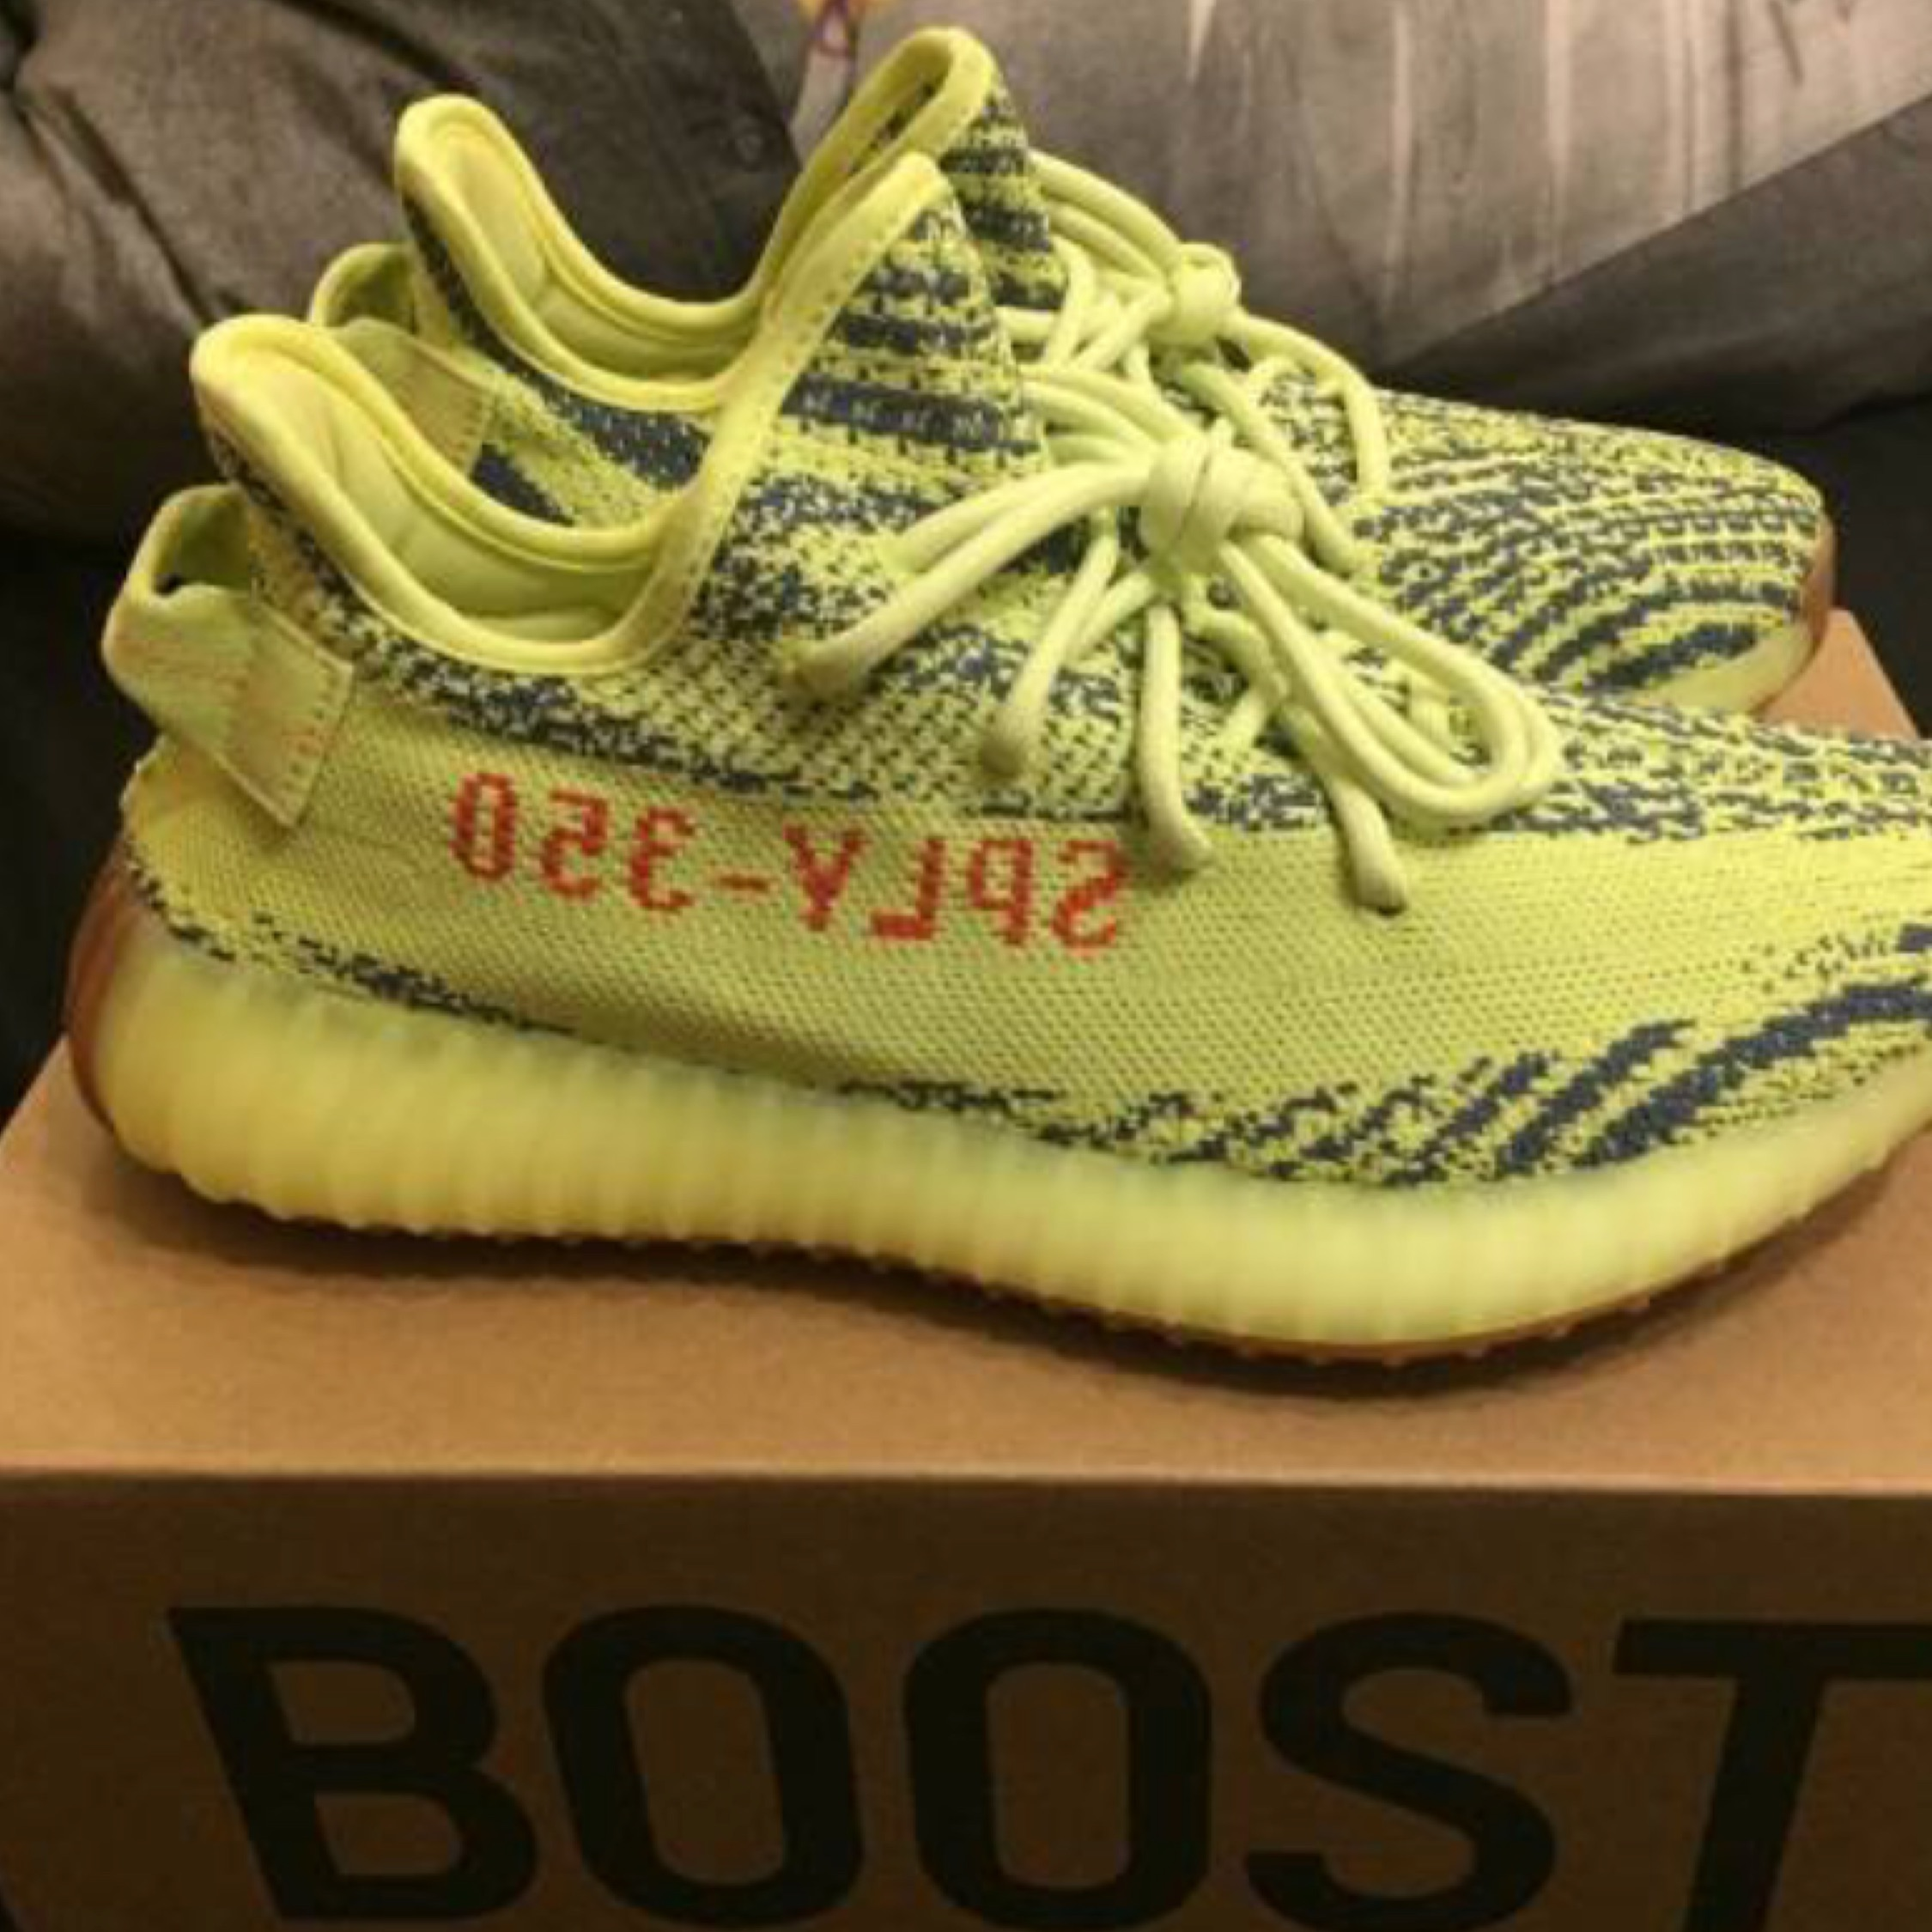 finest selection 92838 7ce65 Adidas Yeezy 350 Boost V2 Semi Frozen Yellow